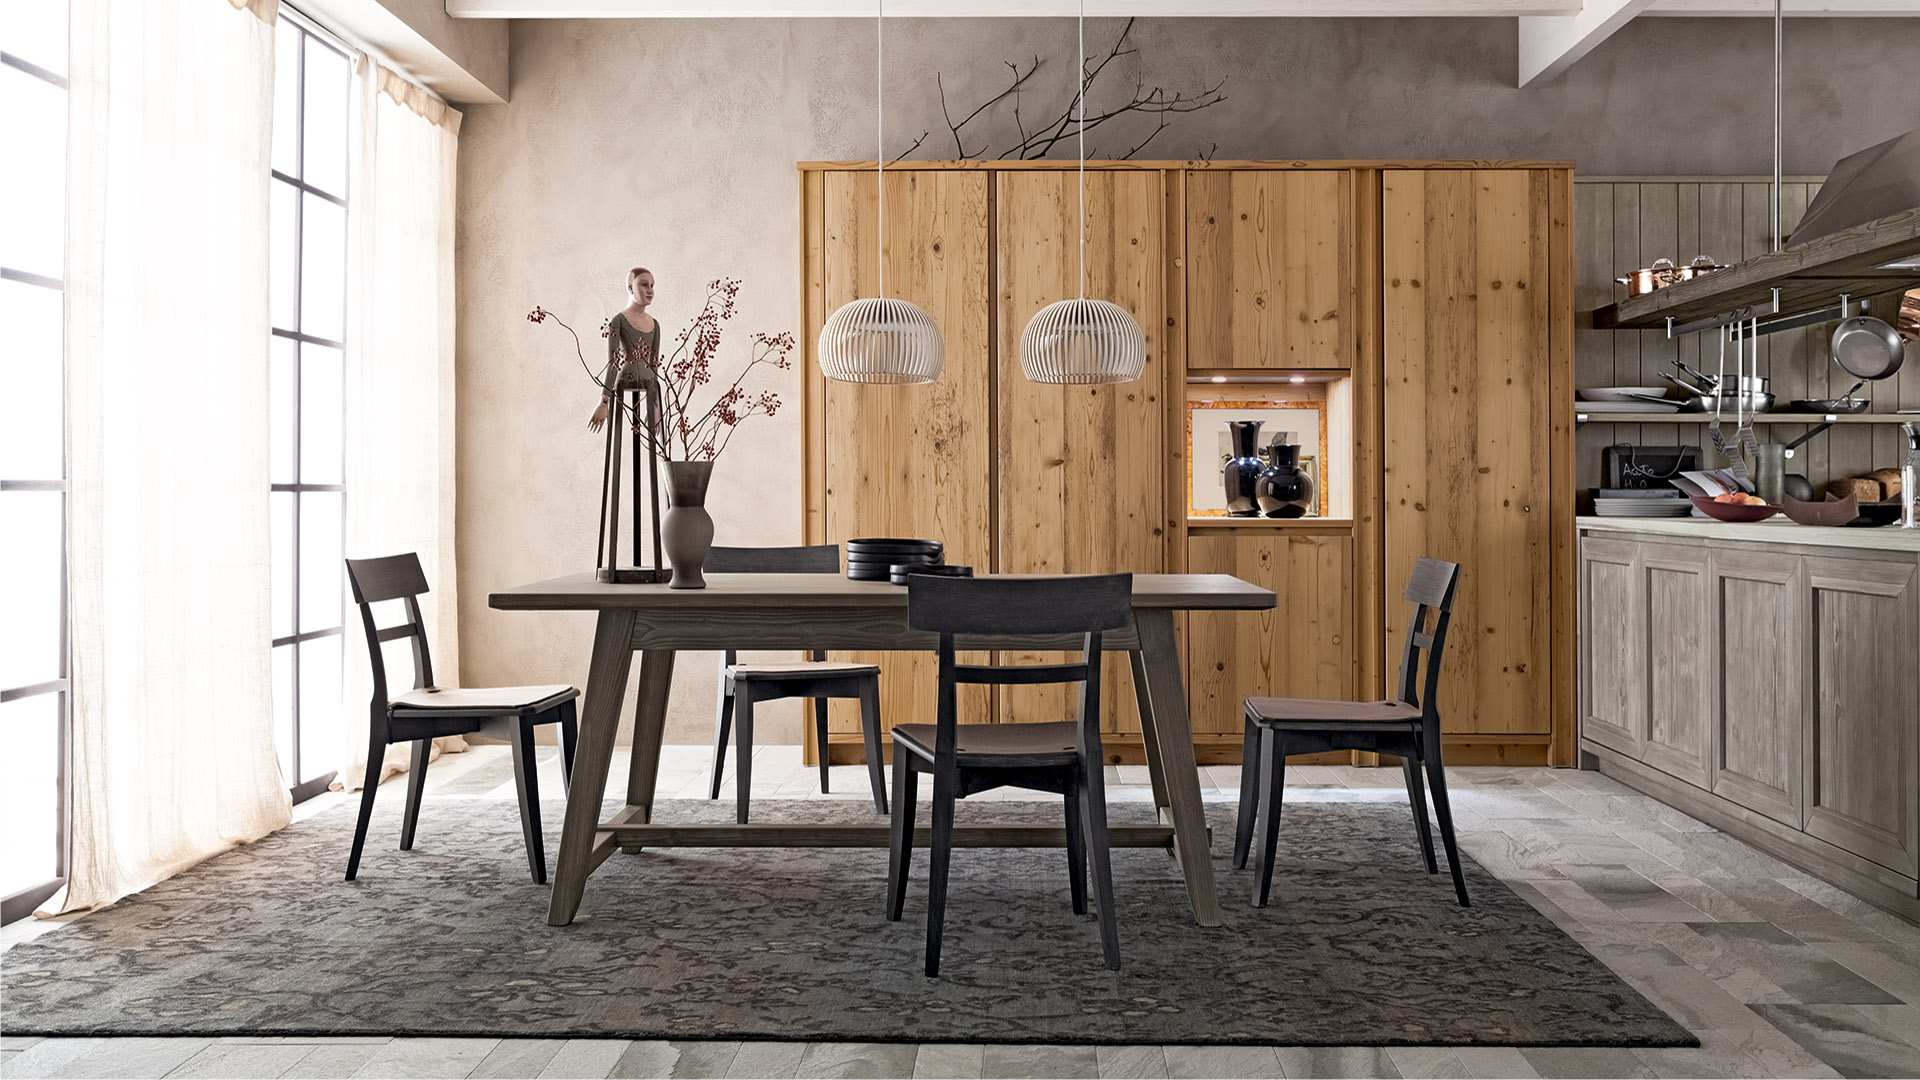 Scandola Mobili: furniture made of genuine wood